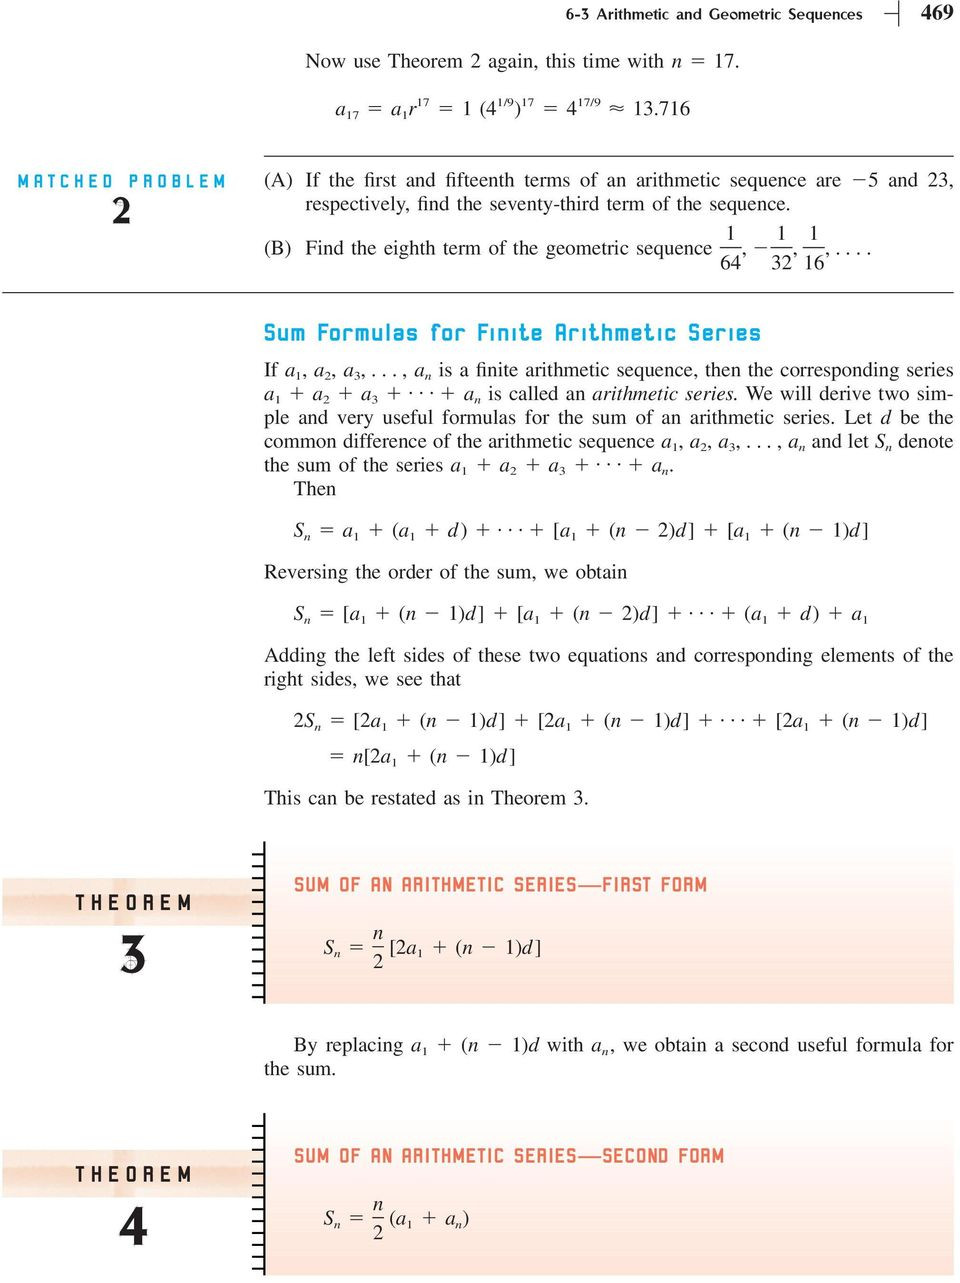 Geometric Sequence Worksheet Answers Section 6 3 Arithmetic and Geometric Sequences Pdf Free